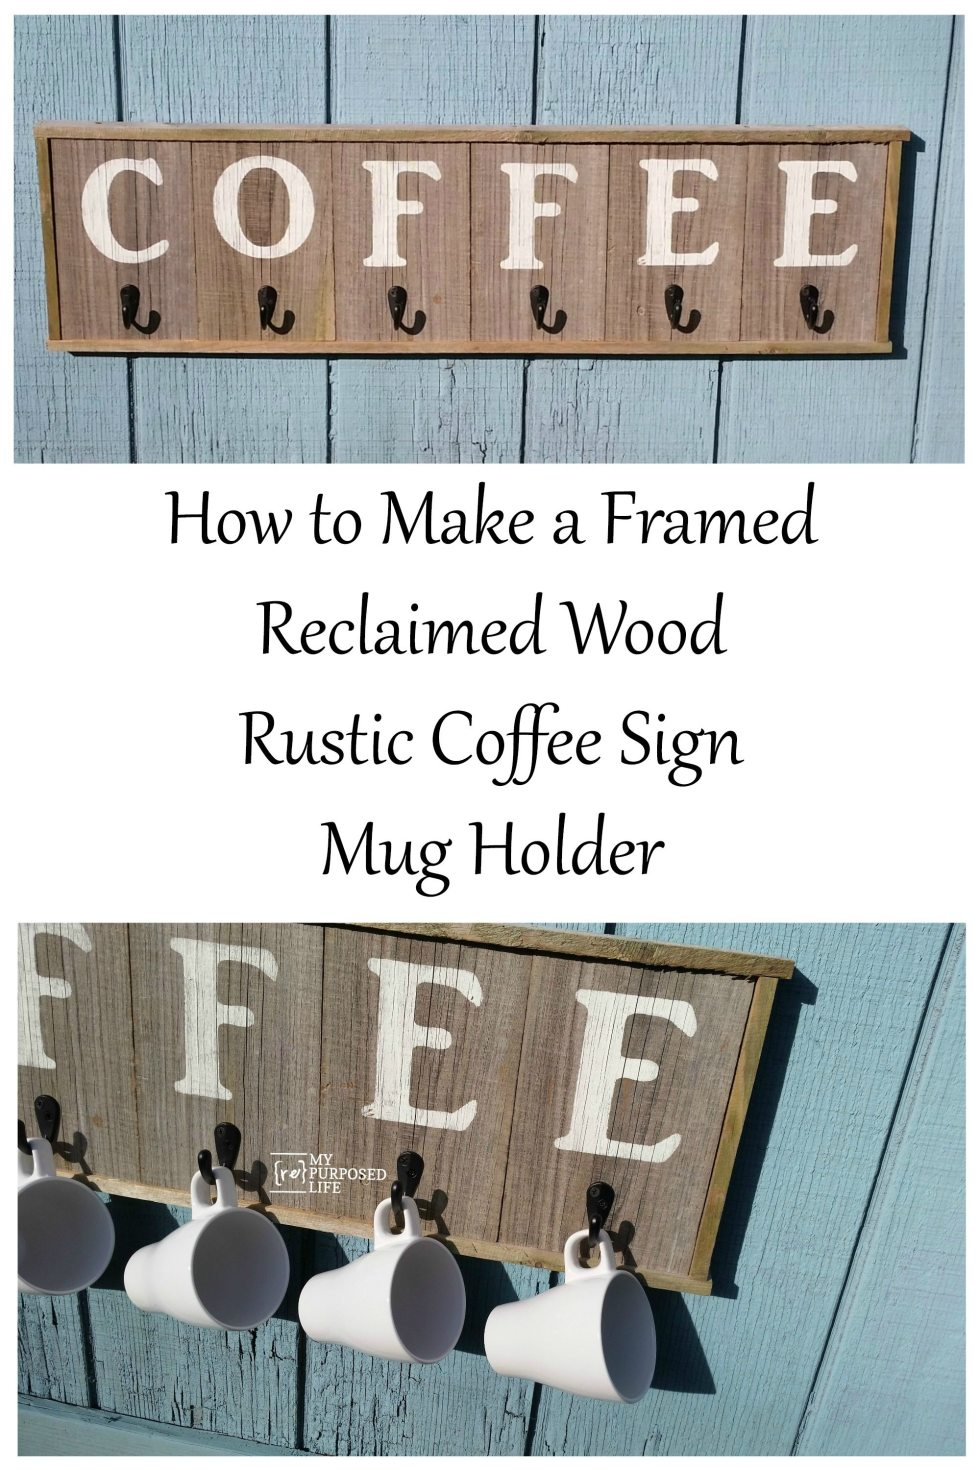 This easy tutorial will show you how to make a coffee sign that holds coffee mugs. Single hooks are great for holding coffee cups on the reclaimed wood sign. Perfect for displaying those special coffee cups! #MyRepurposedLife #reclaimed #coffee #diy #sign #ilovecoffee via @repurposedlife